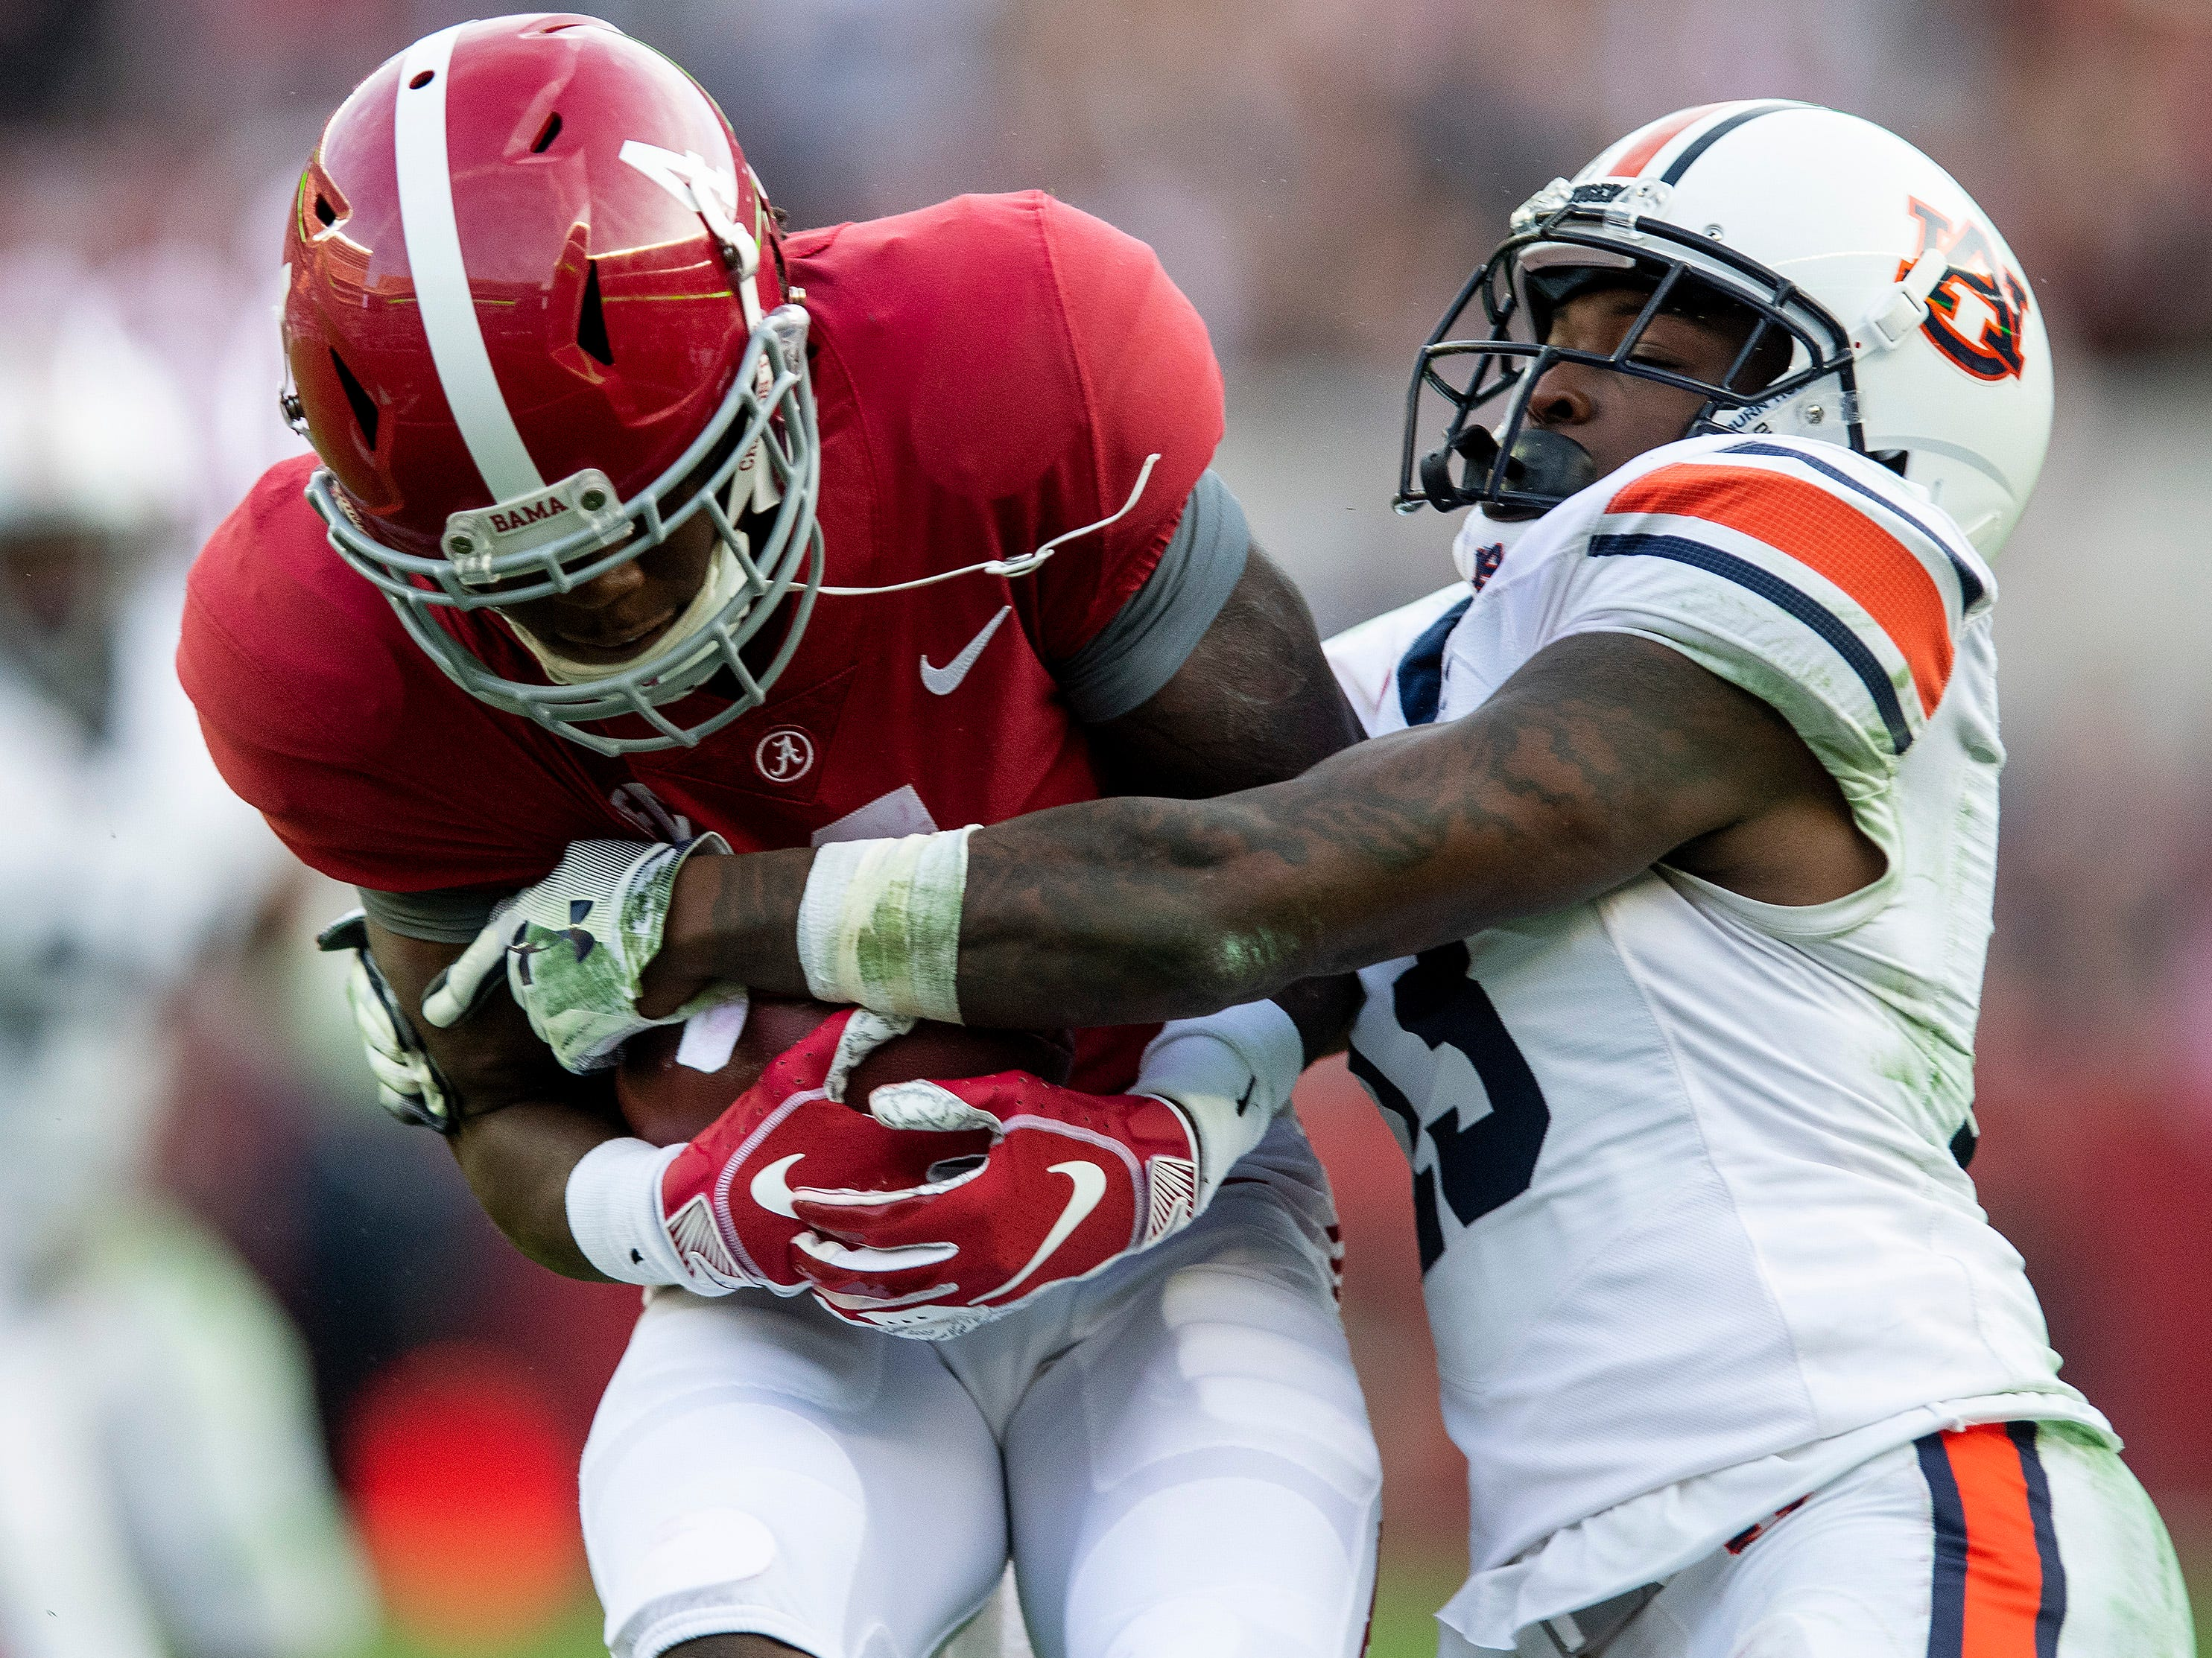 Auburn defensive back Javaris Davis (13) stops Alabama wide receiver Jerry Jeudy (4) in first half action during the Iron Bowl at Bryant-Denny Stadium in Tuscaloosa, Ala., on Saturday November 24, 2018.